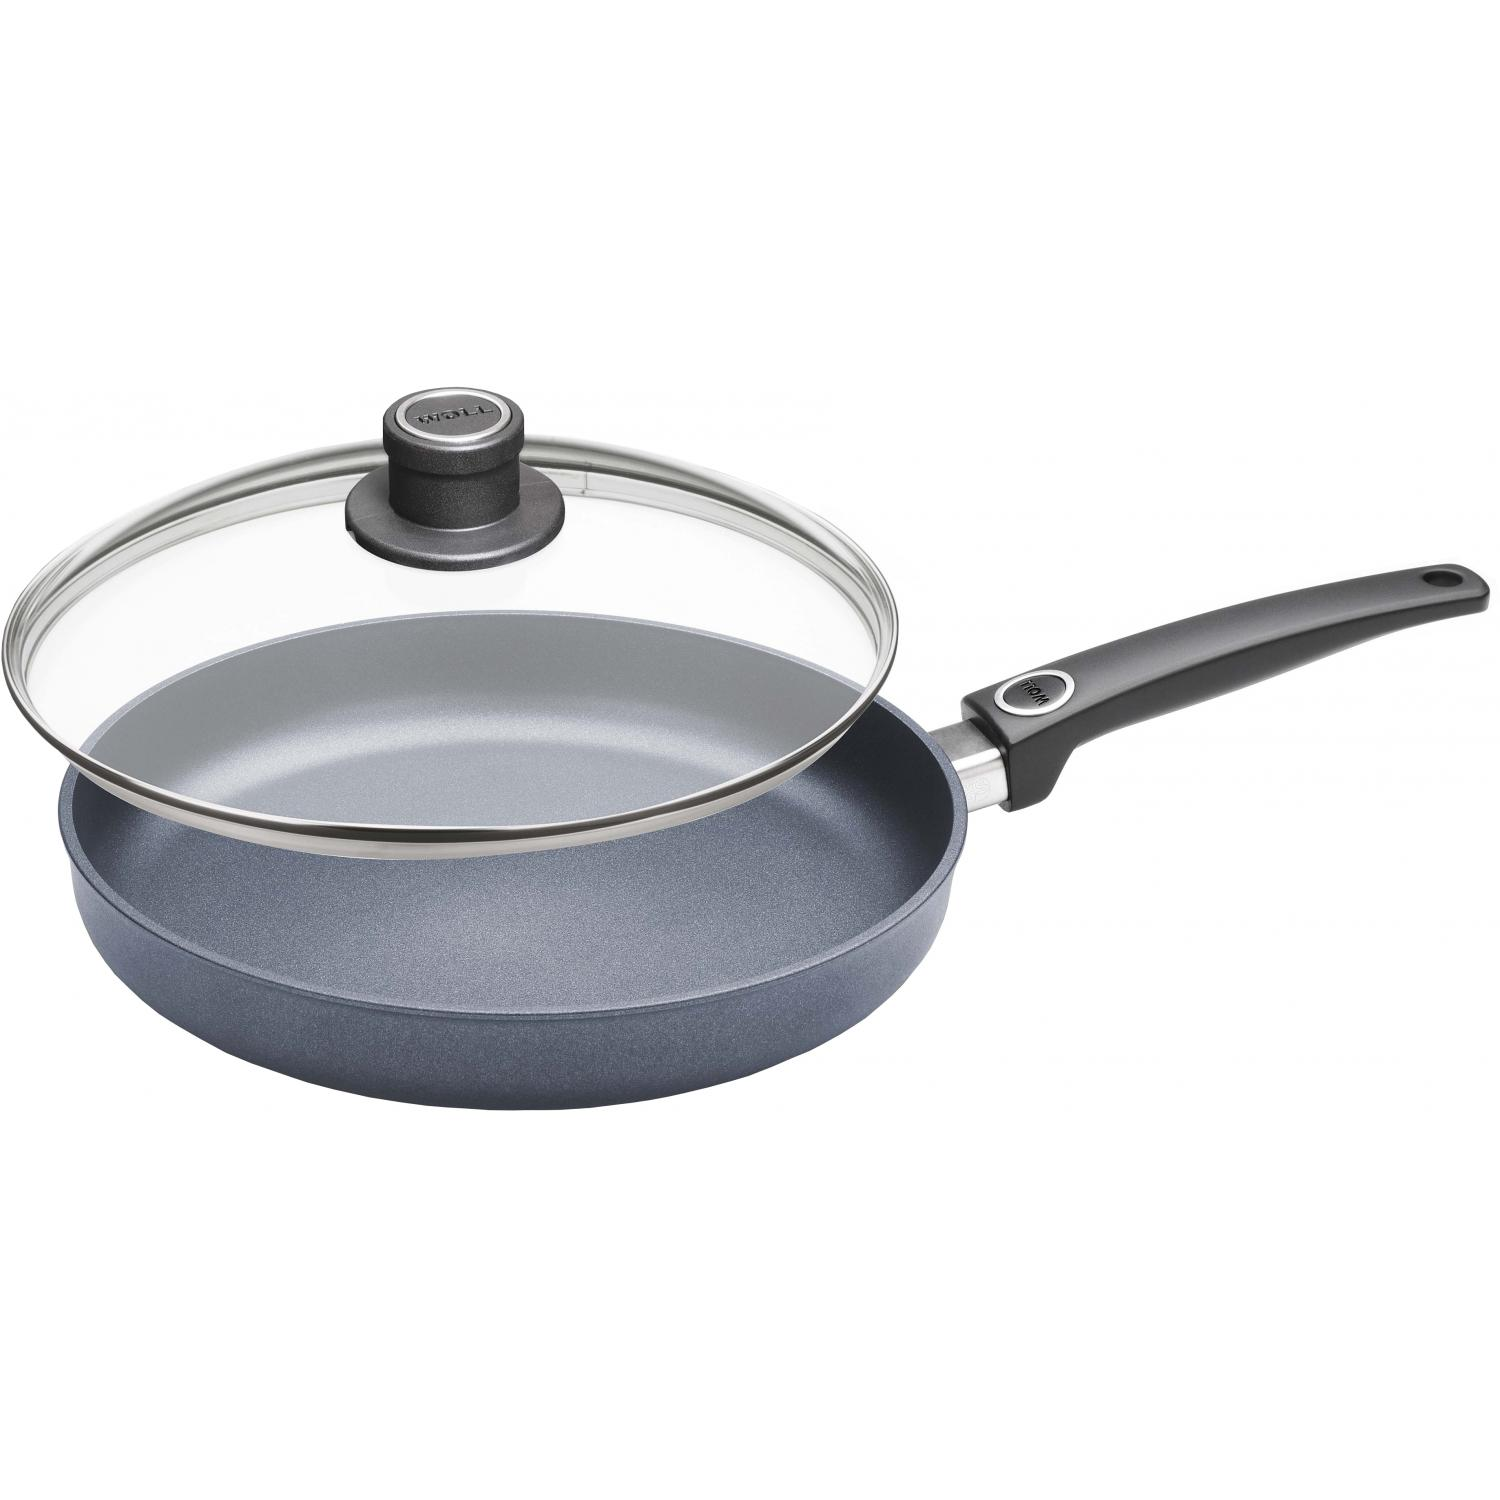 Woll Diamond Plus Induction 11-Inch Nonstick Frying Pan With Lid 2875970